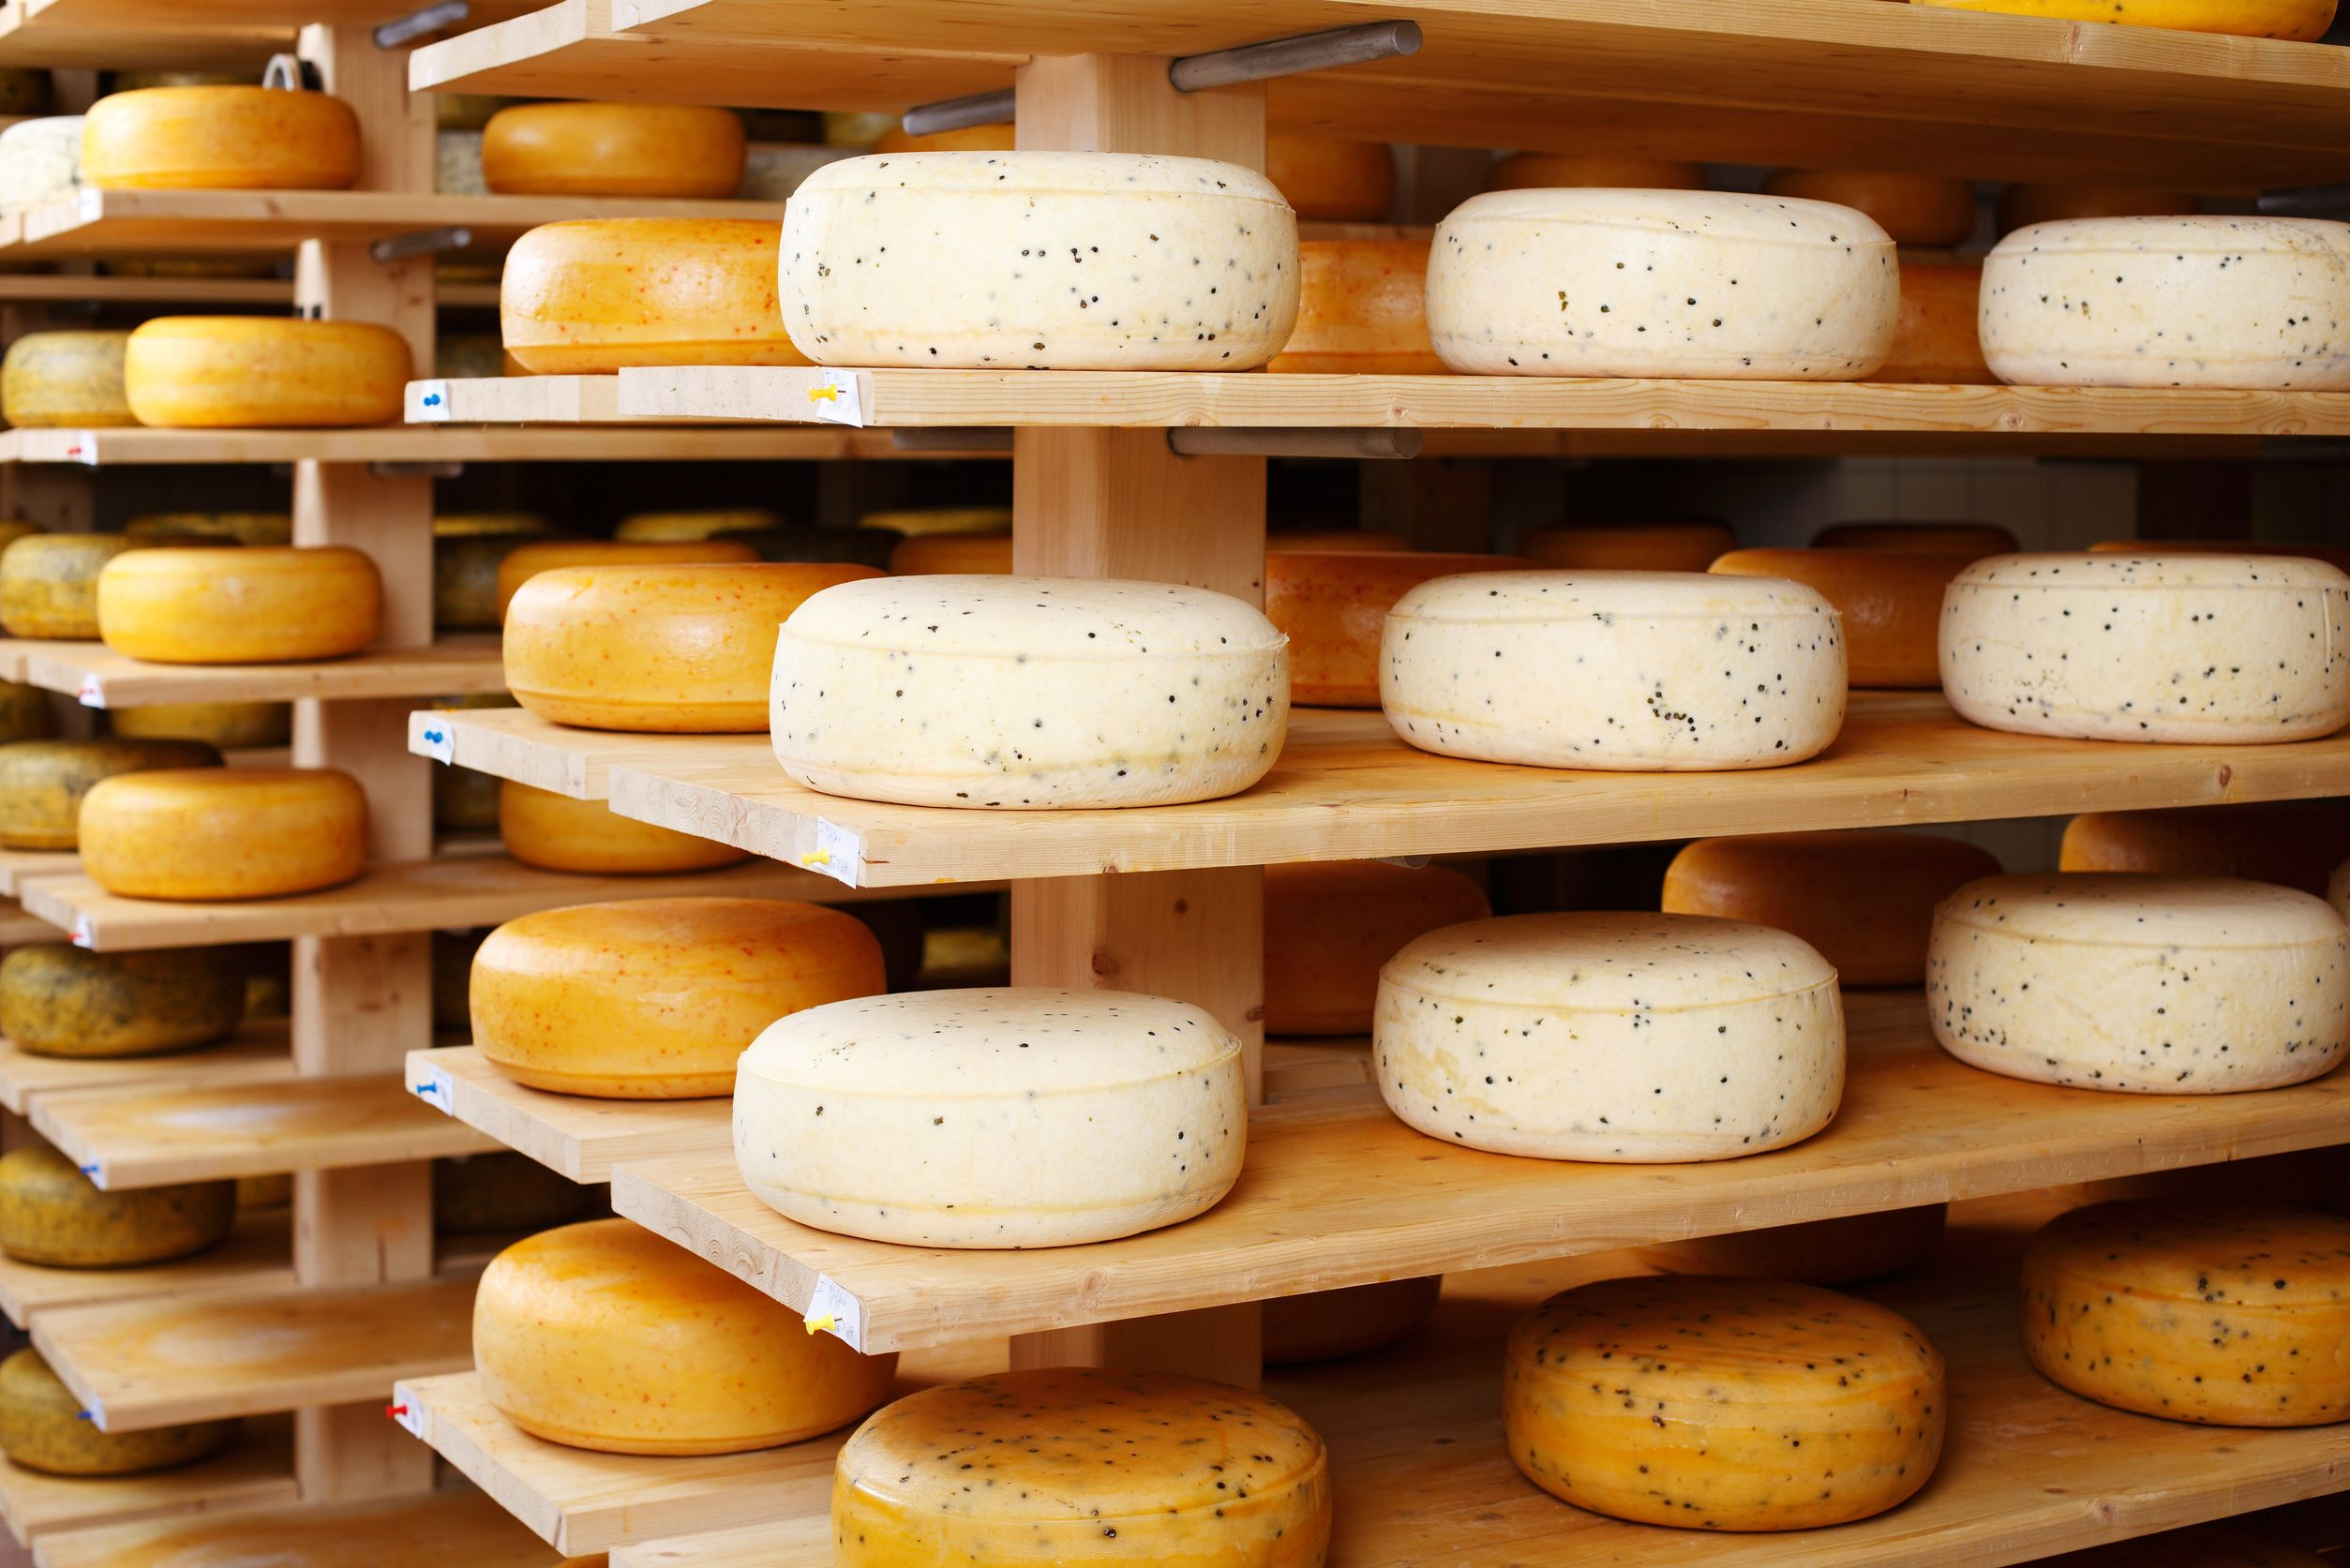 Visit cheese factories